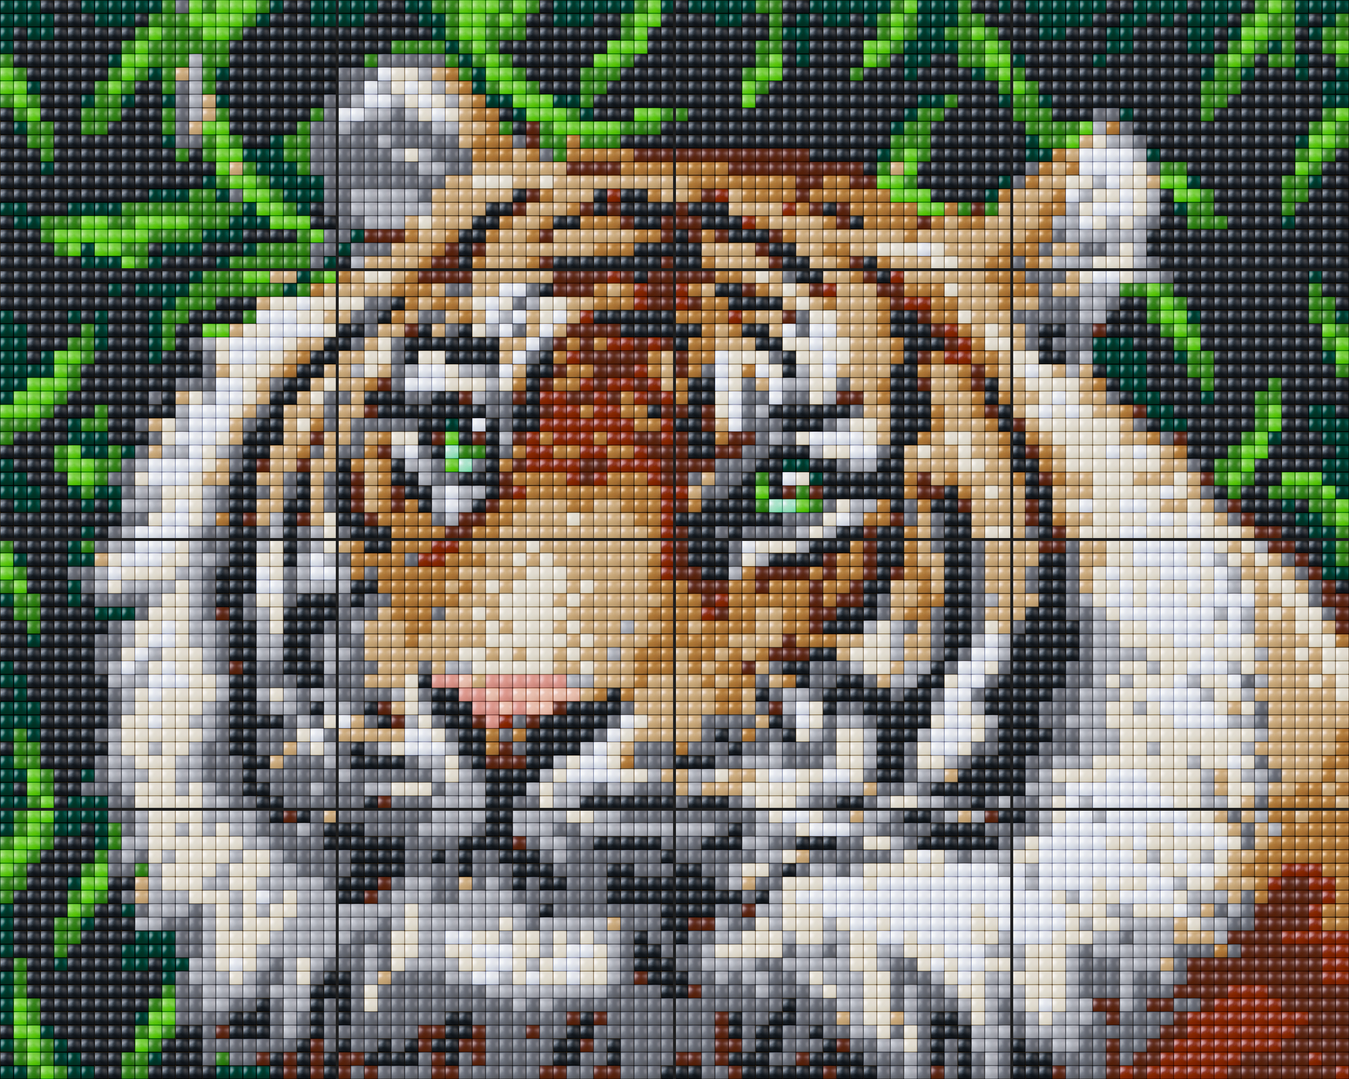 Tiger_Animals_Liz_4x4L_80x100_XL.png